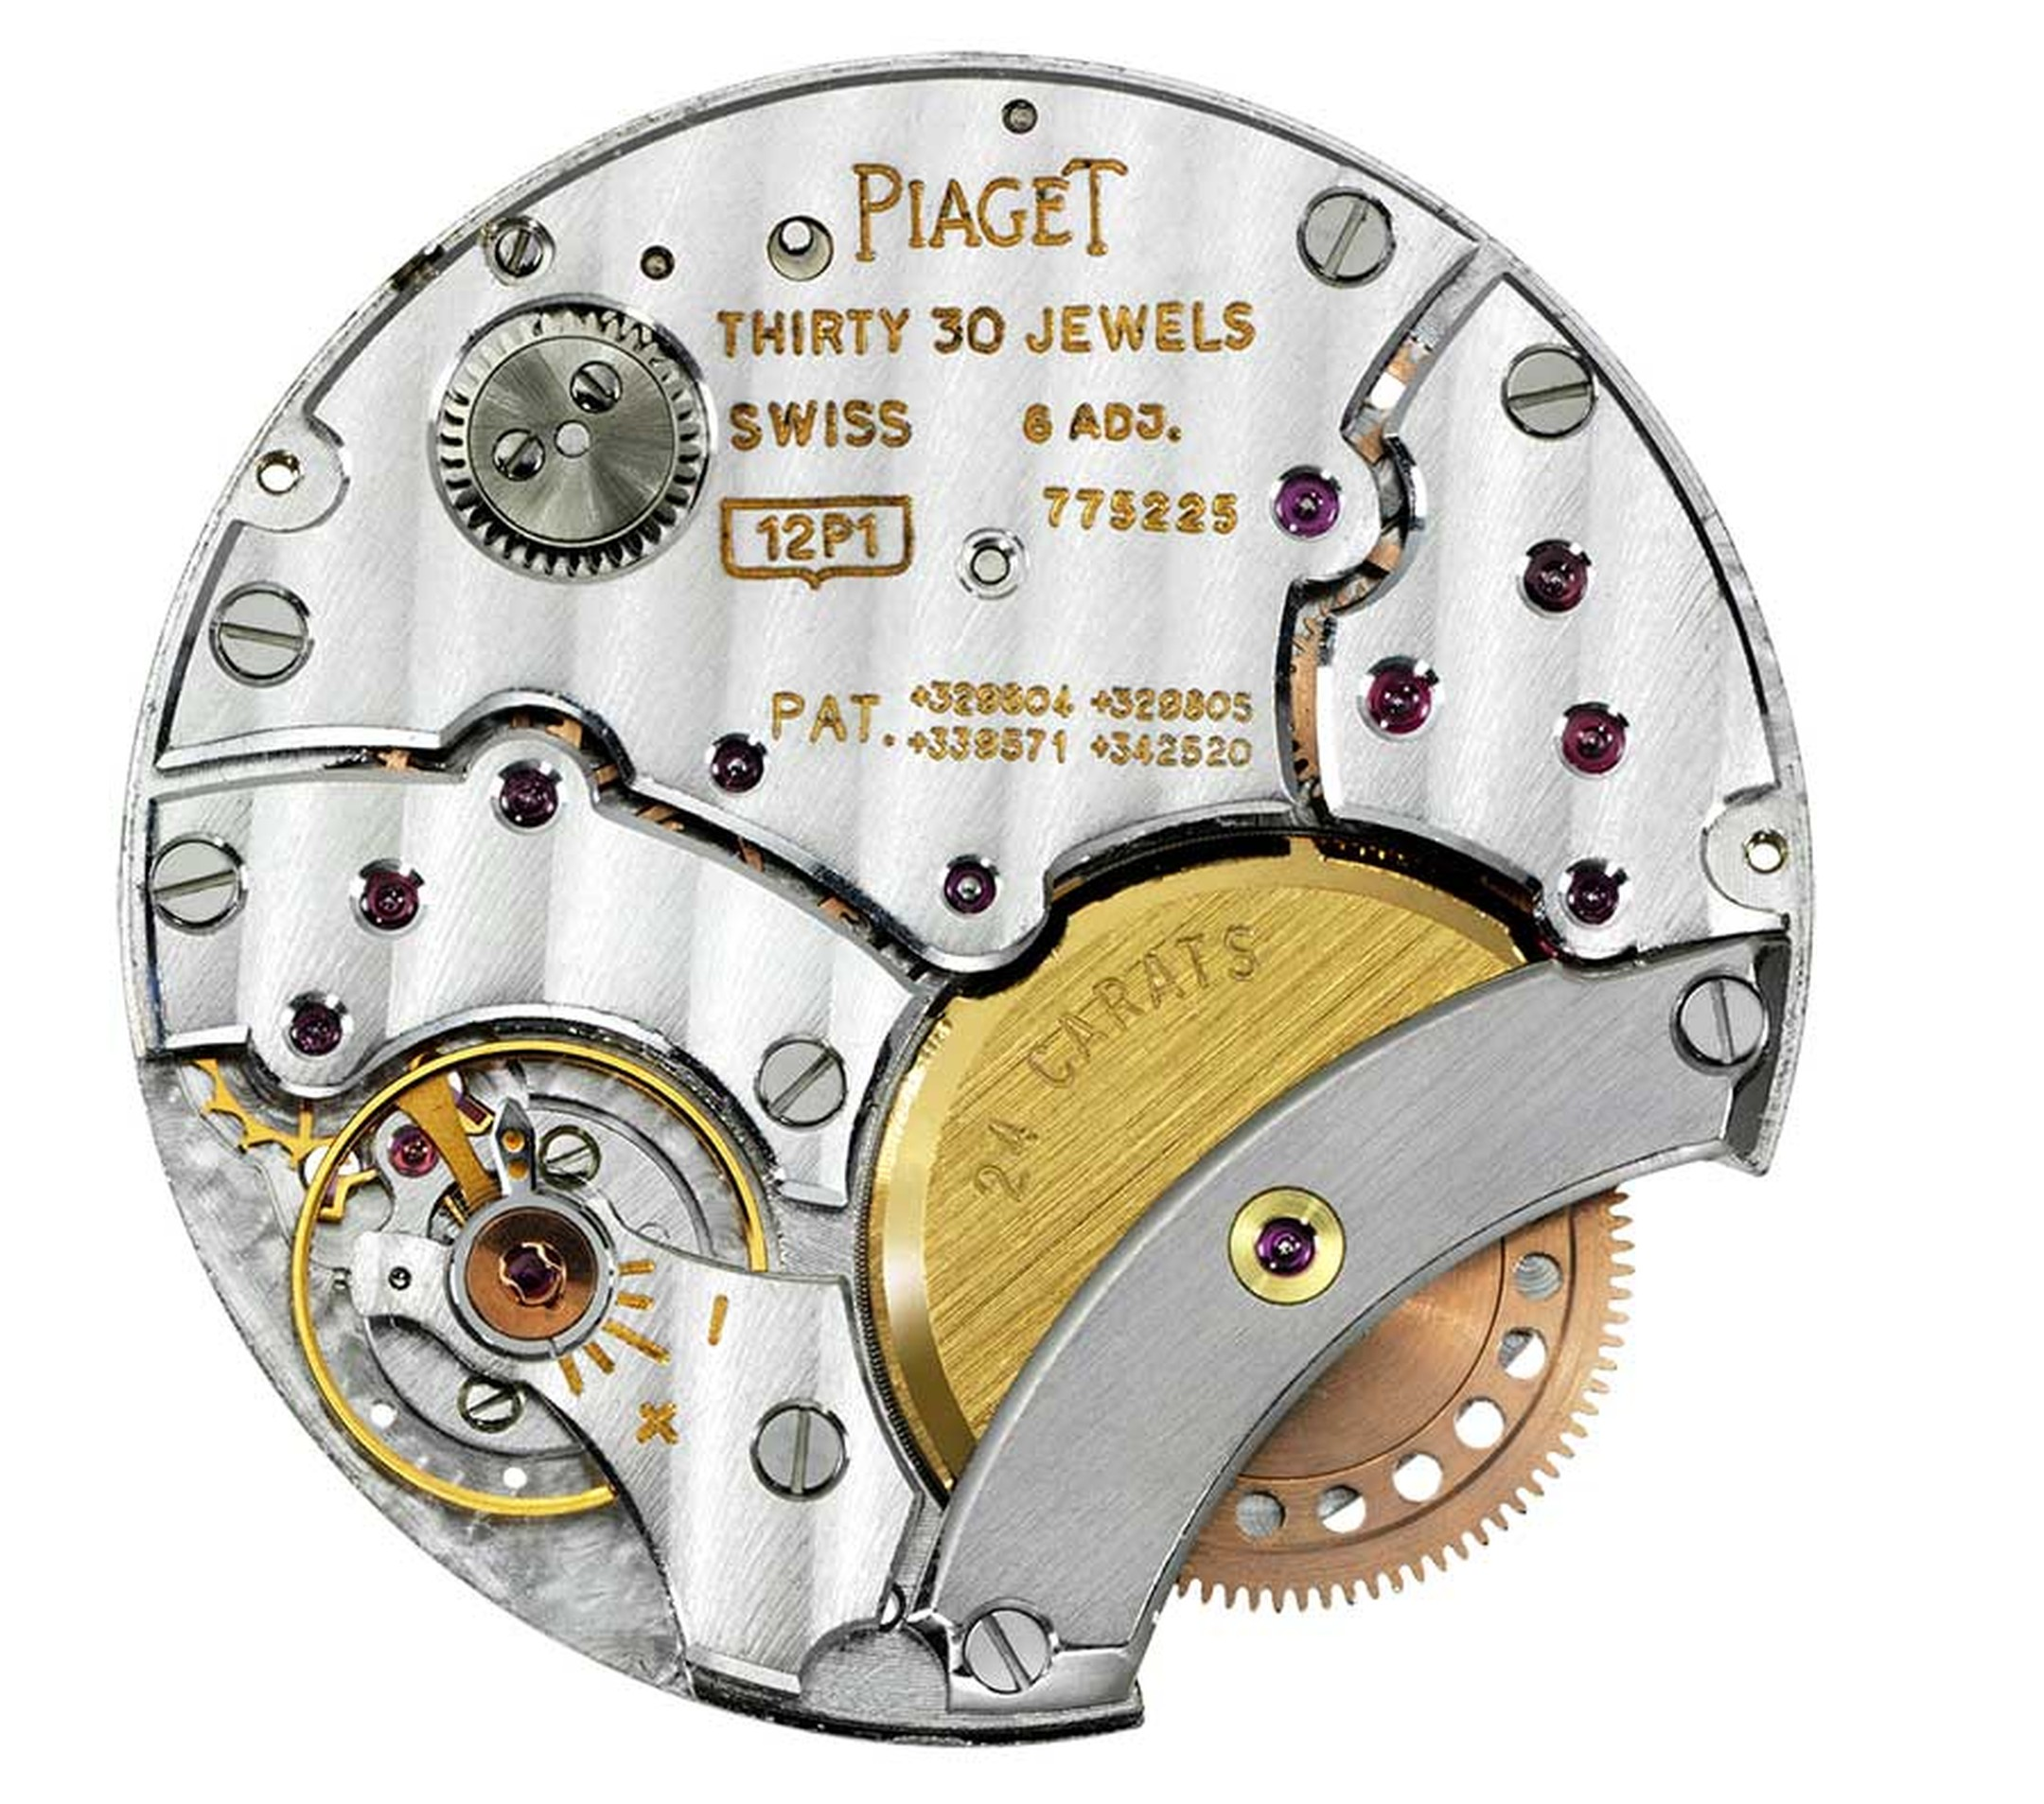 Piaget Ultra-Thin 43 mm automatic 1208 P calibre